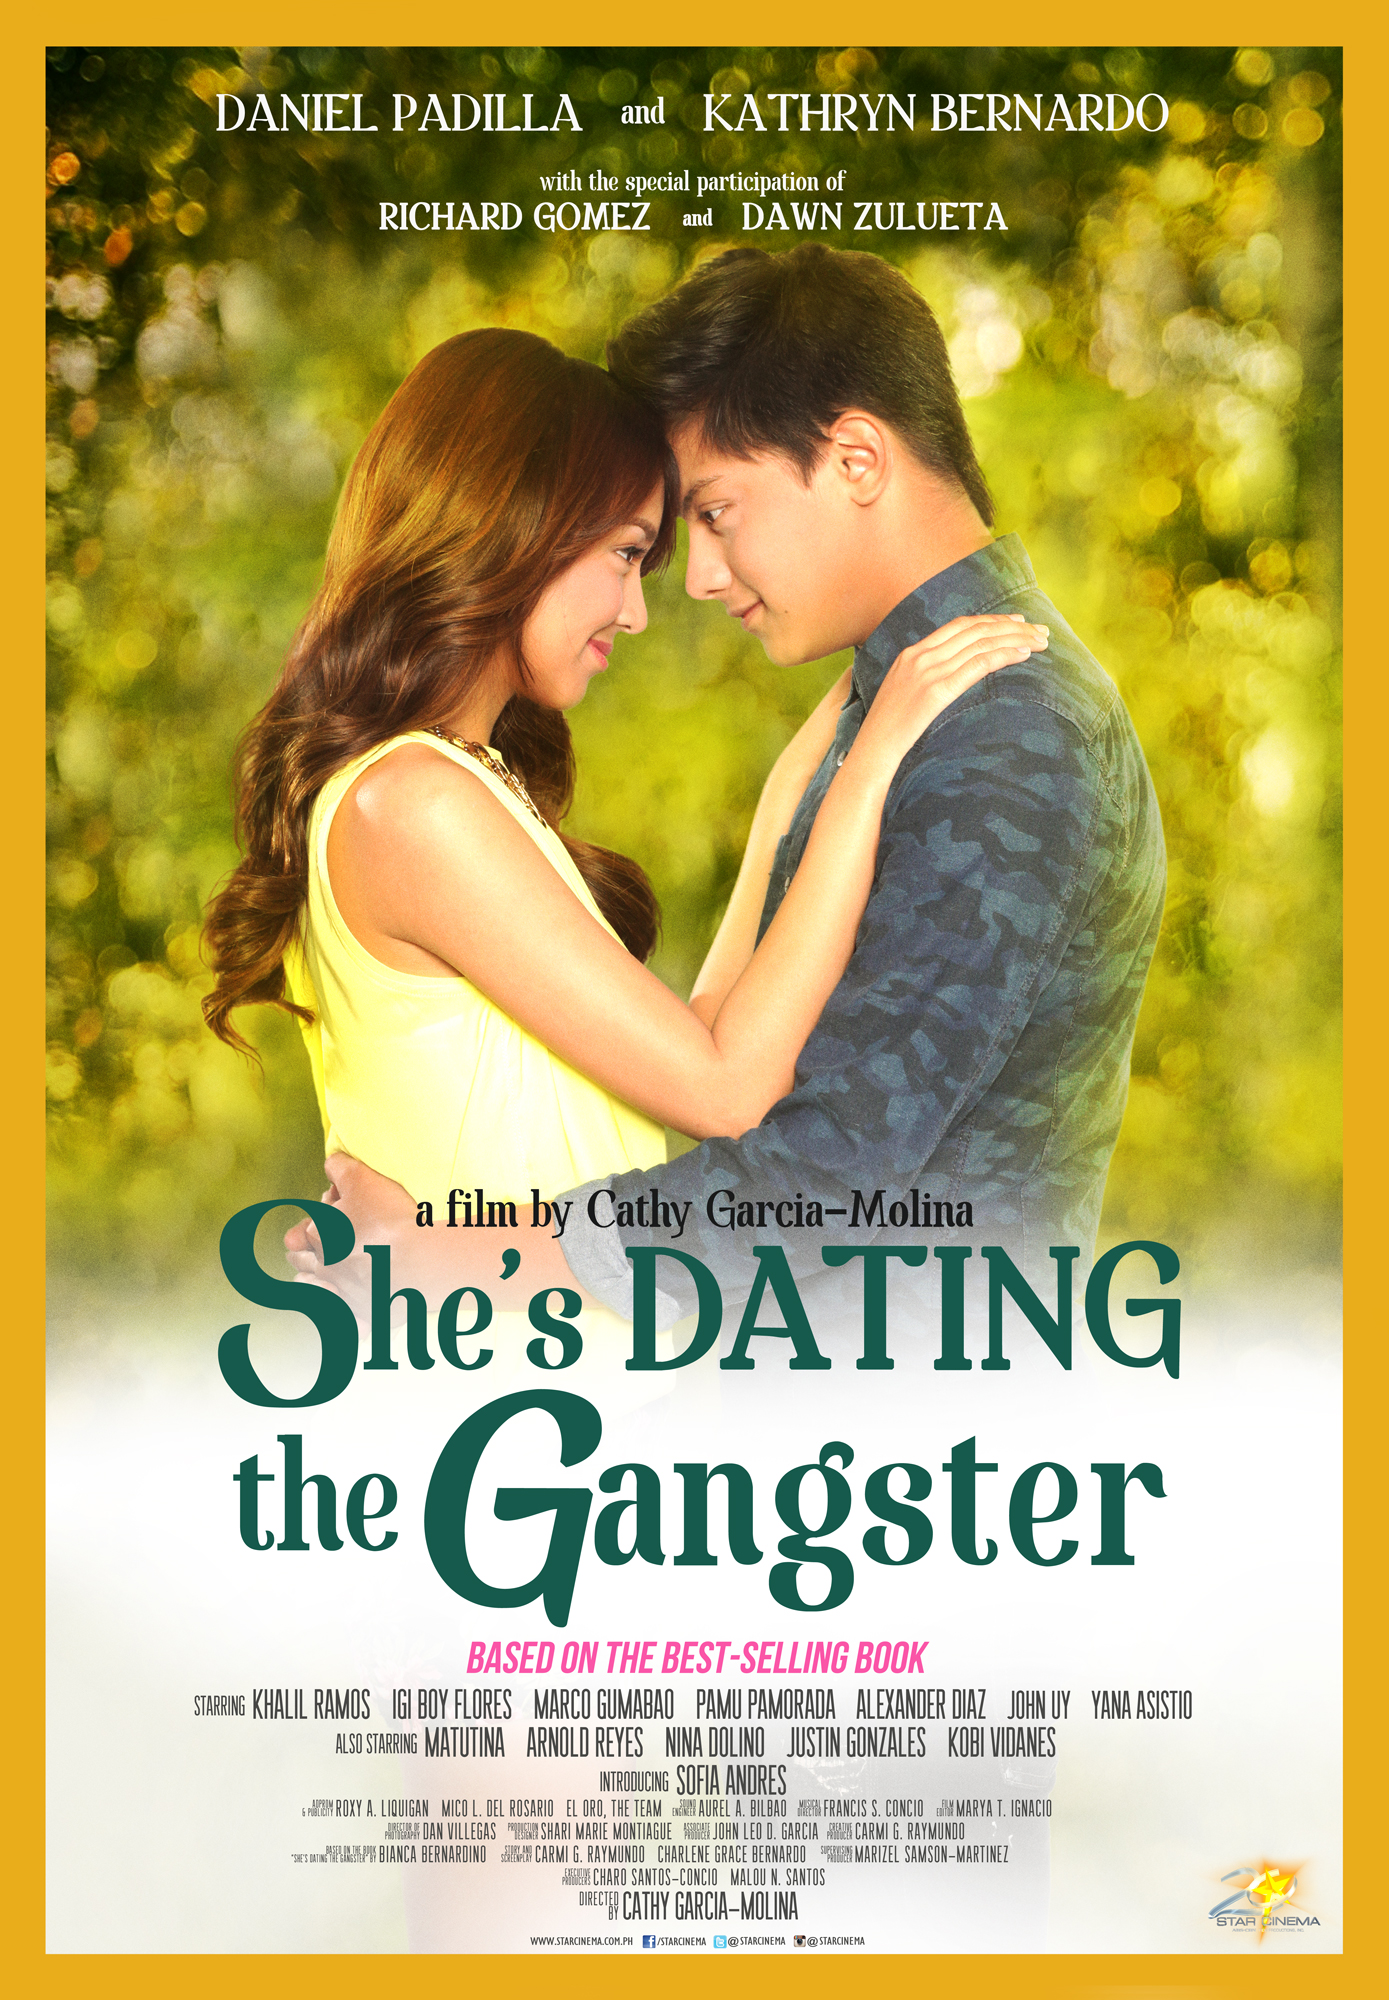 Shes dating the gangster full movie clear copy typing